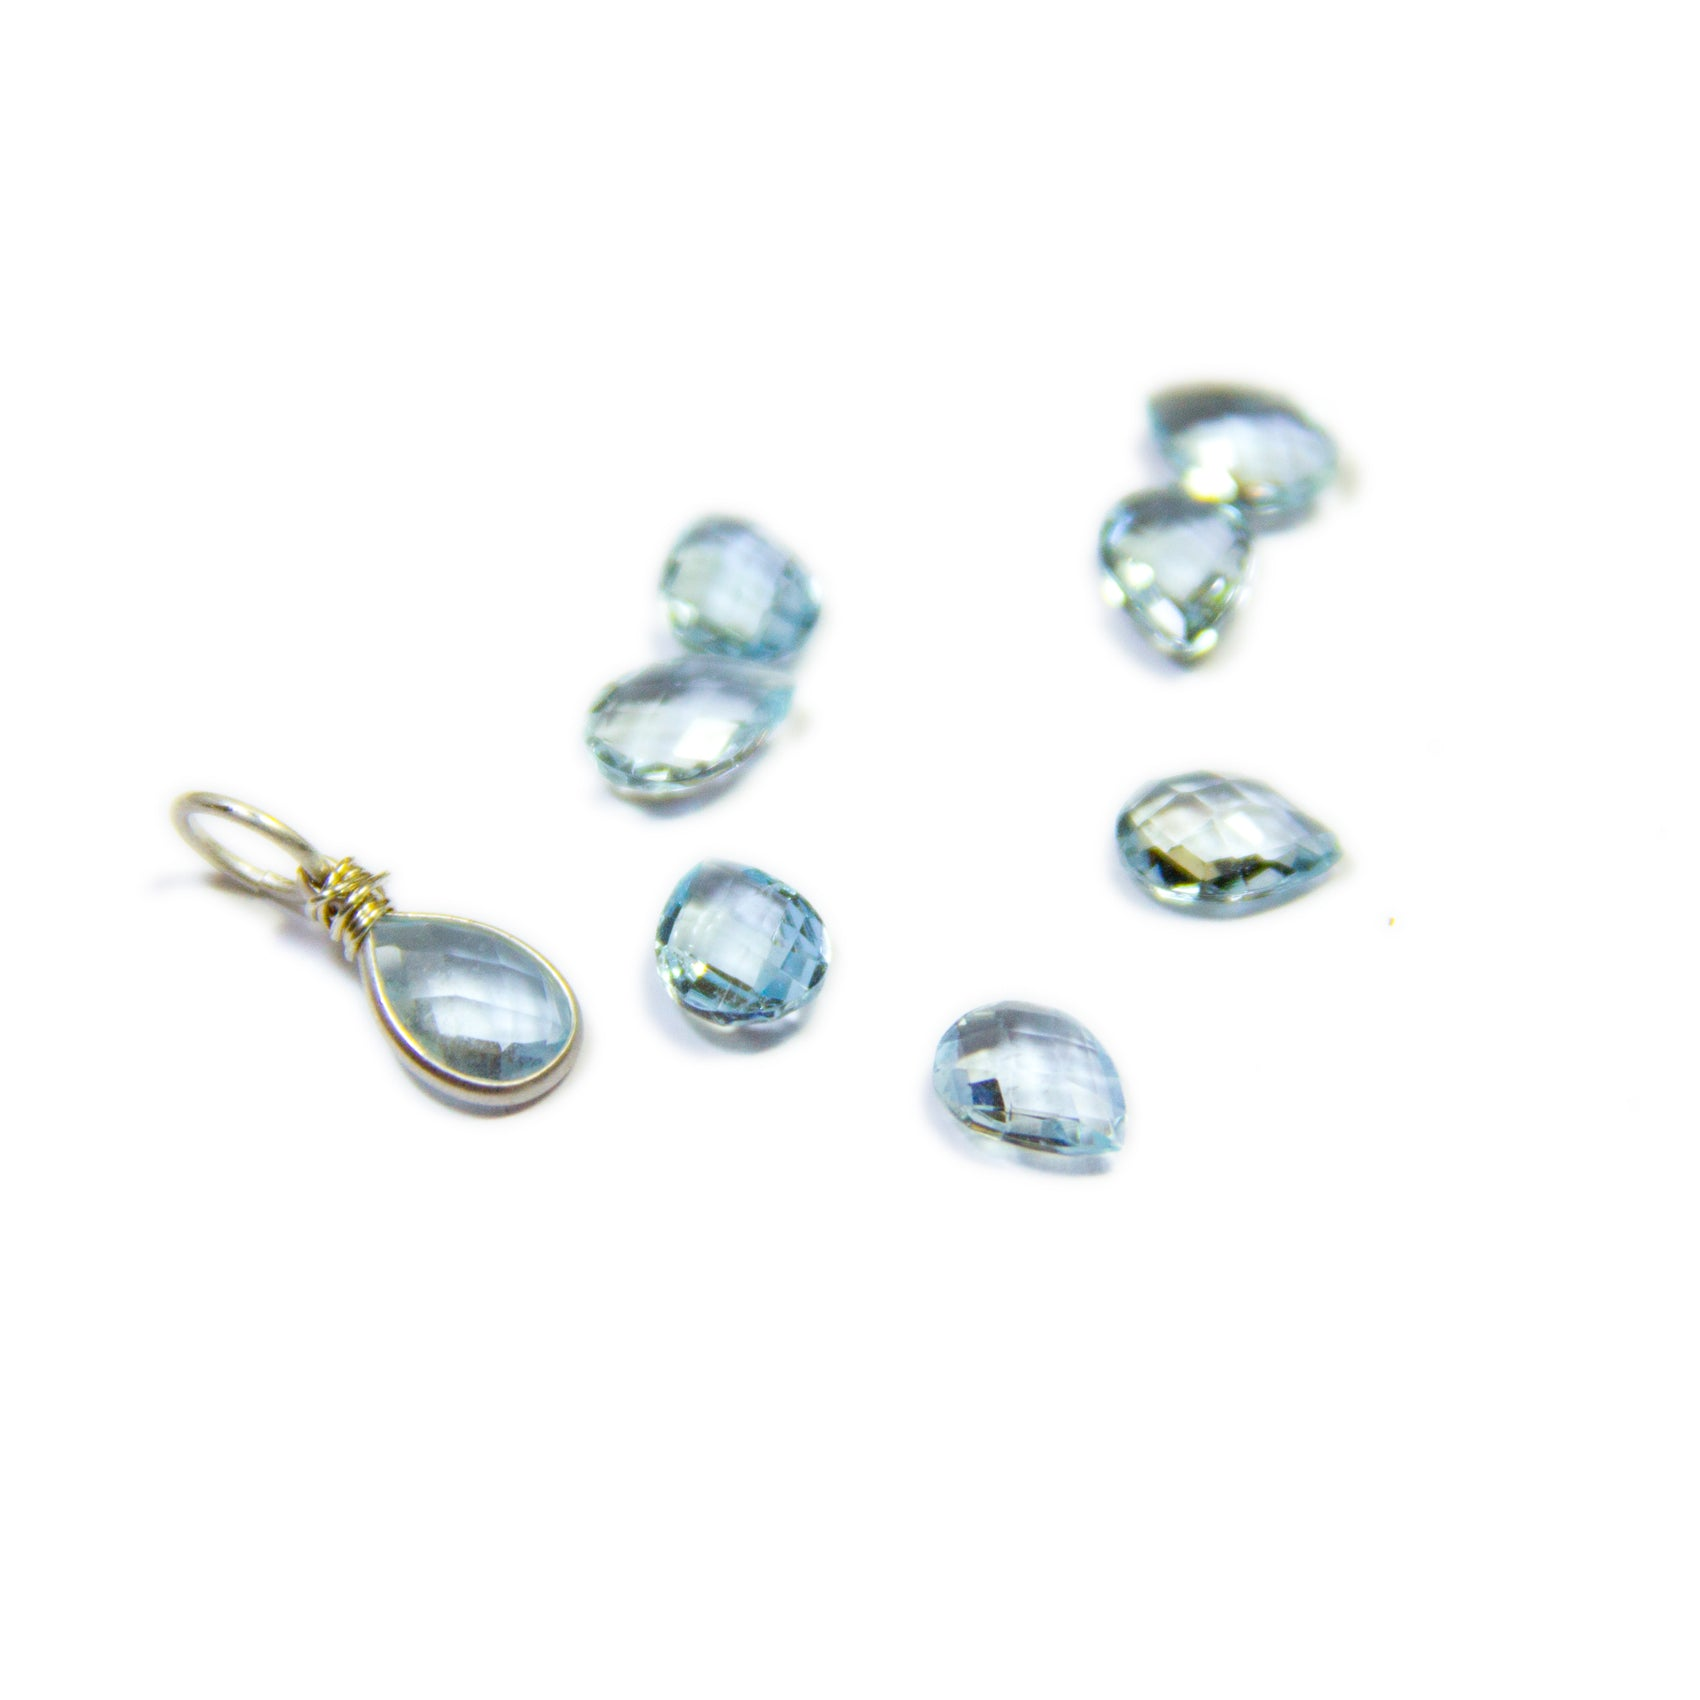 5b5dbf841 Aquamarine Gemstone Drop Charm - Heart and Stone Jewelry